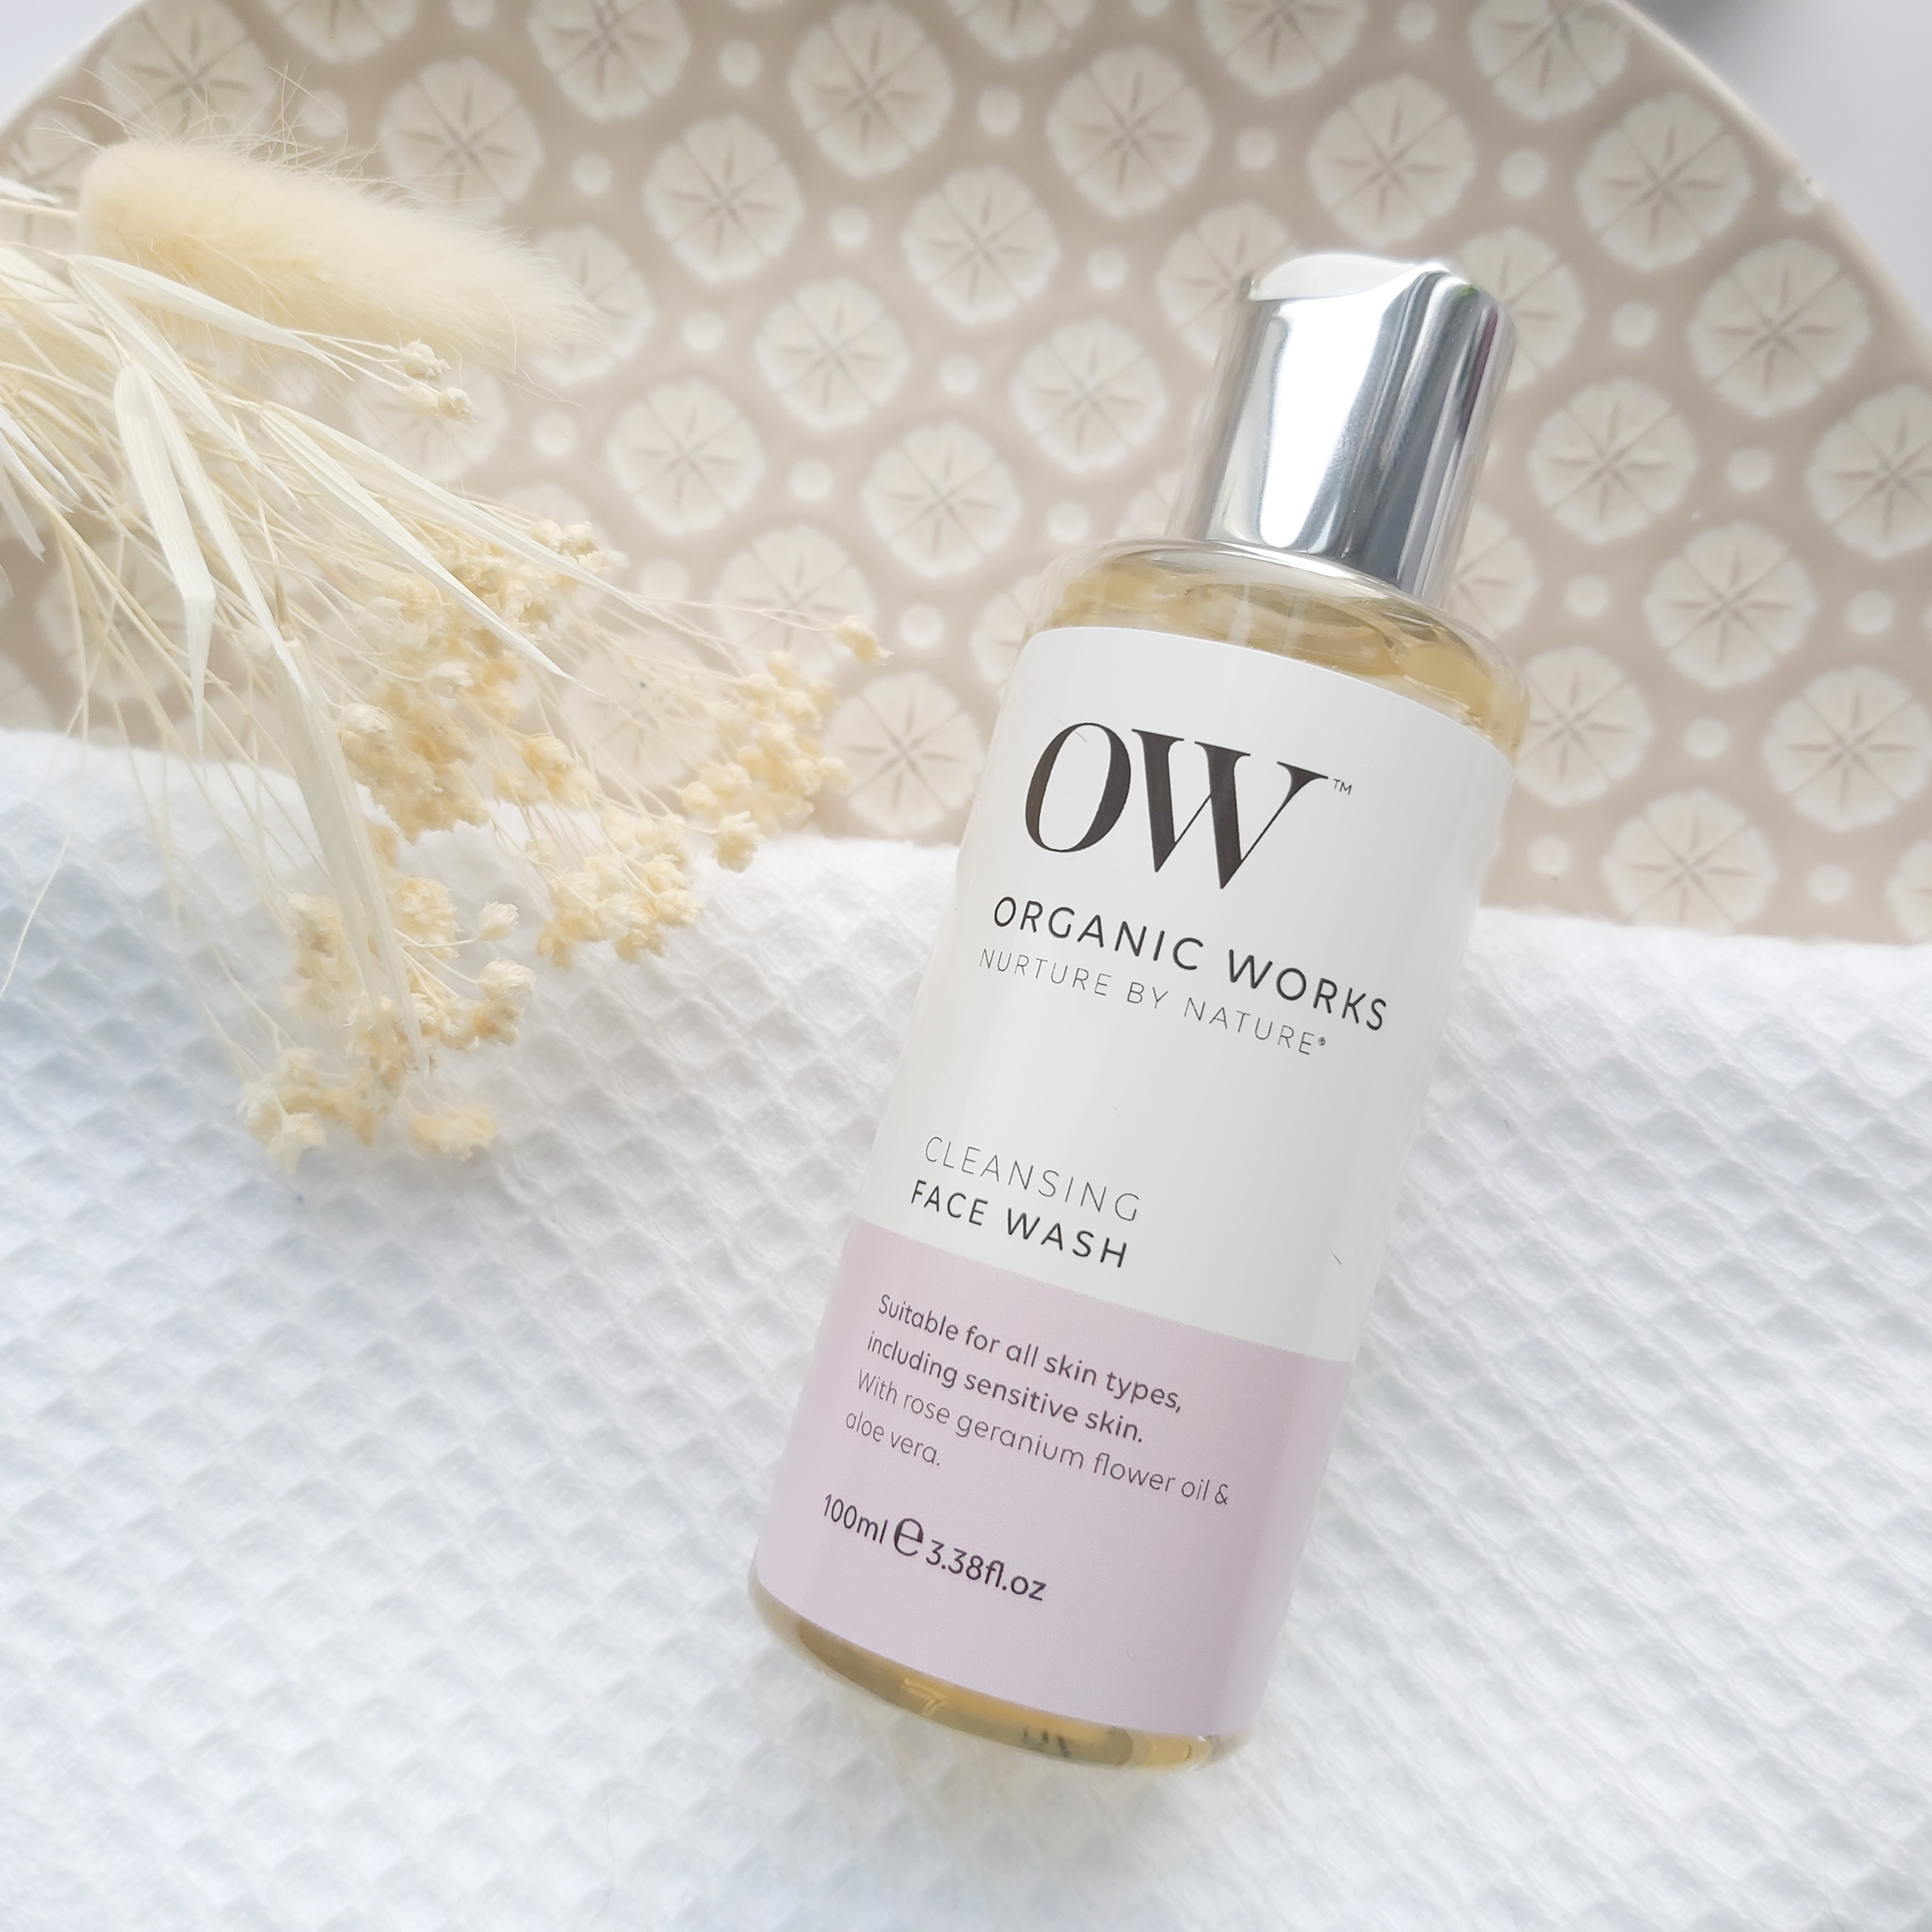 Organic Works Cleansing Face Wash featured in The Natural Beauty Box May 2021 on a patterned plate, waffle white towel and natural foliage - Review by Beauty Folio